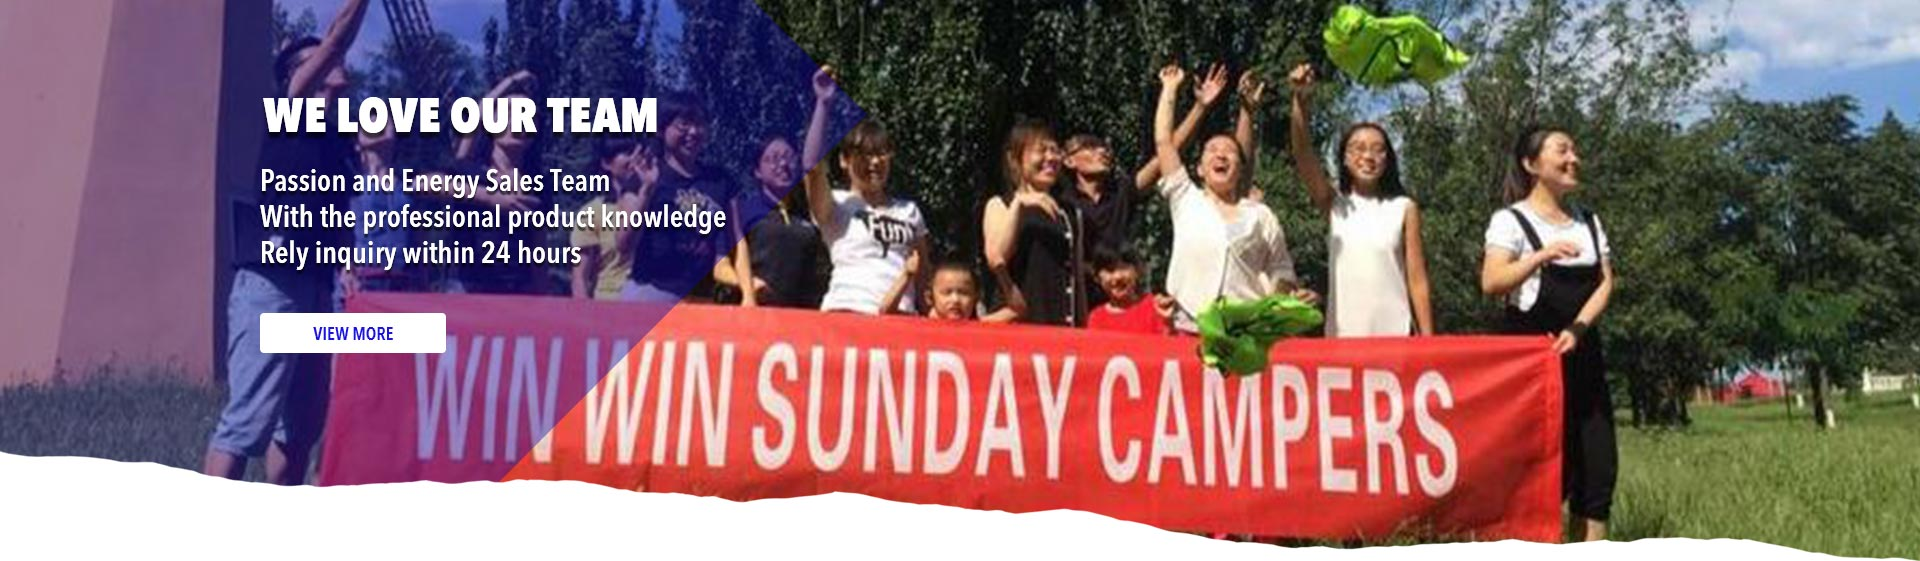 Sunday Campers